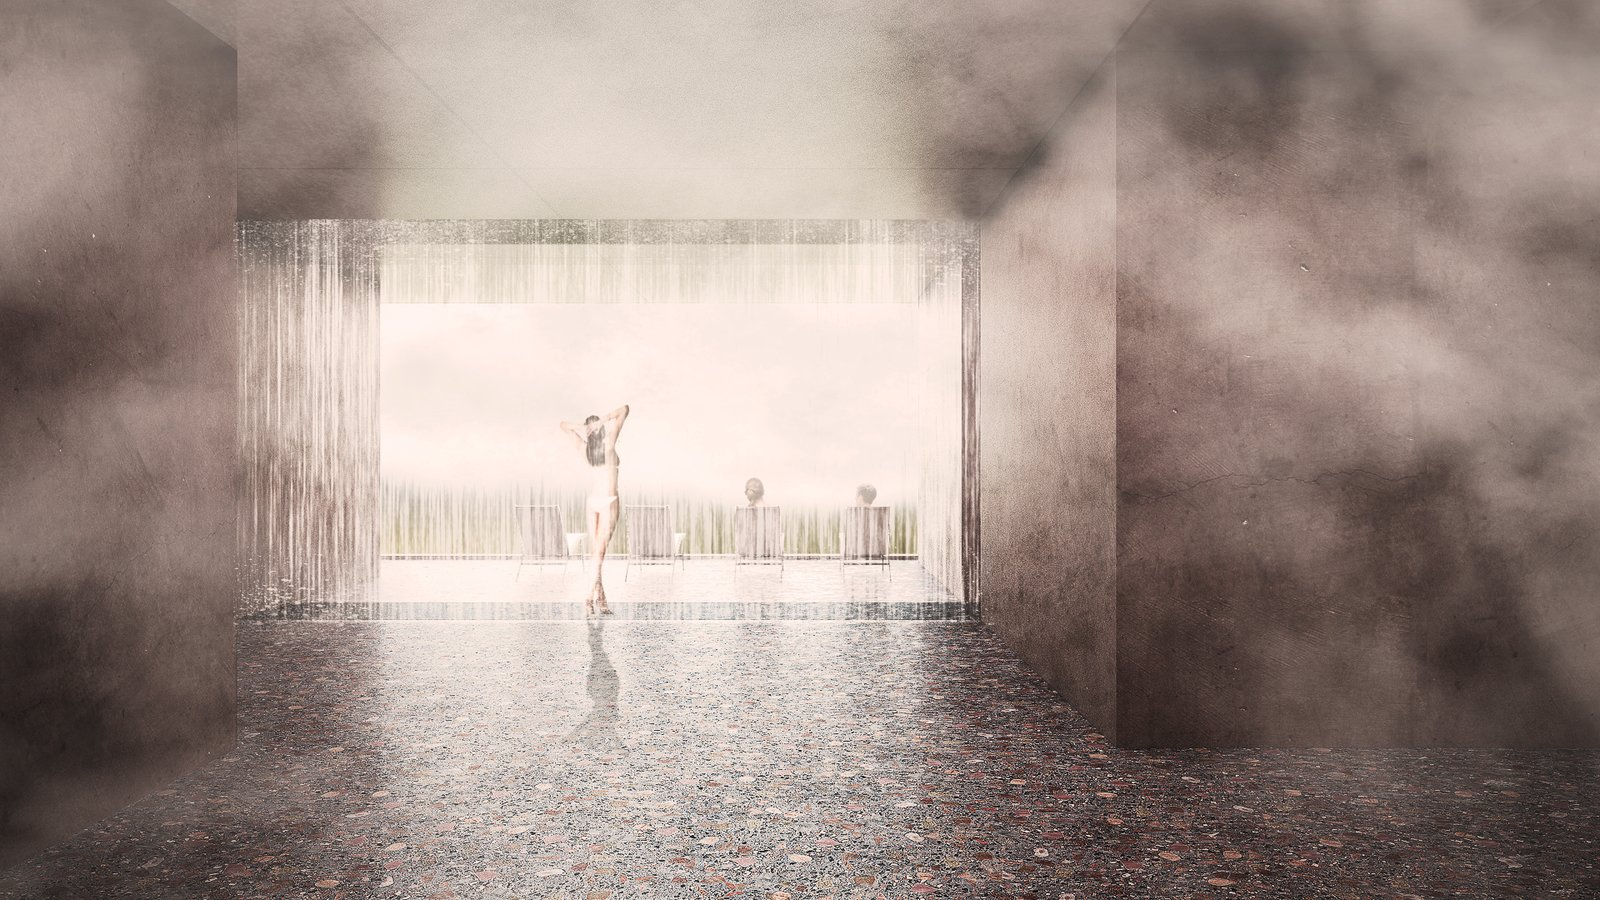 Bath Room rain shower  Photo 15 of 18 in A Proposed Icelandic Resort Celebrates Wellness and its Magical Surroundings